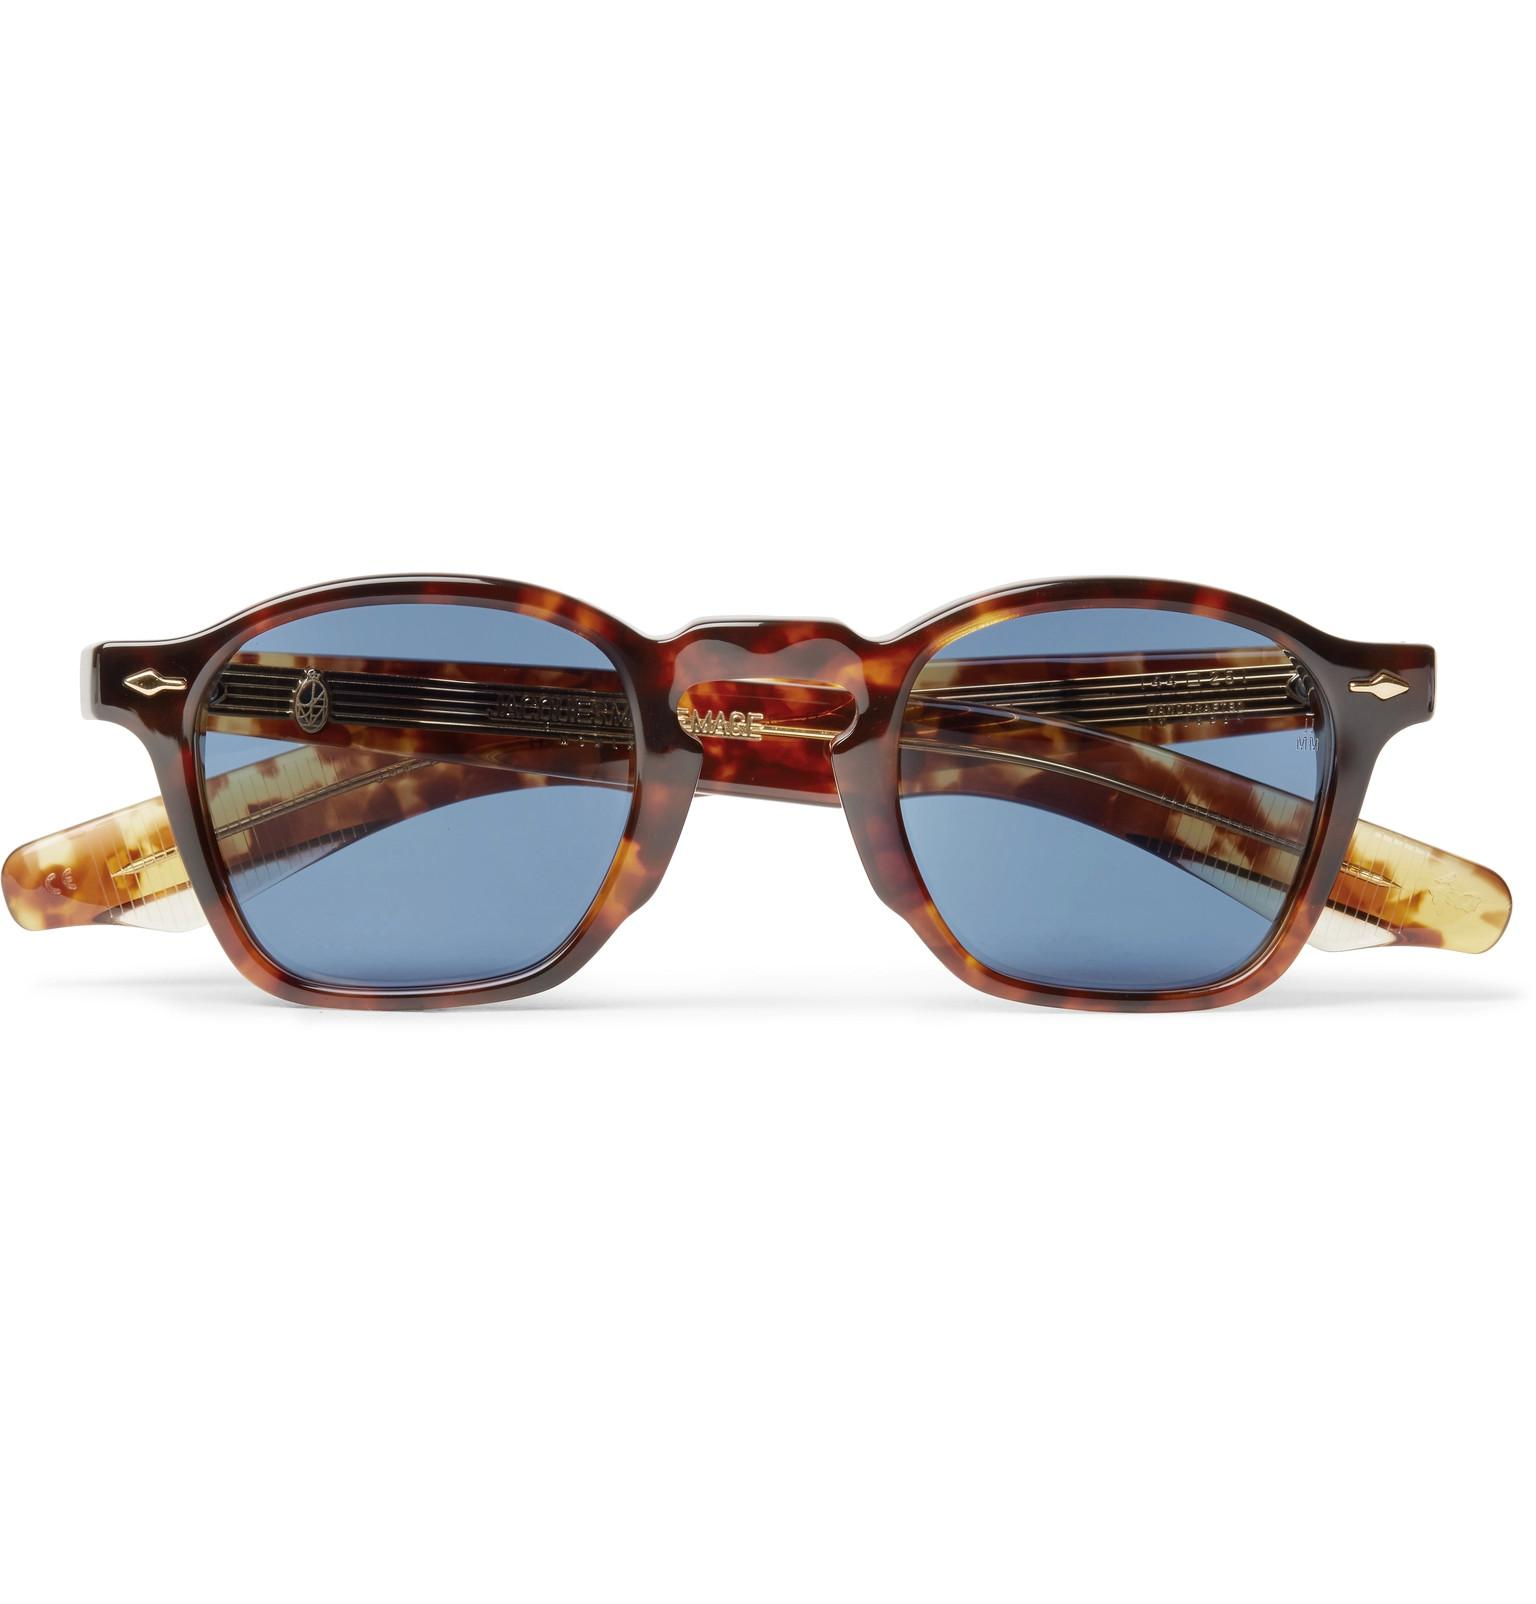 Delean tortoiseshell acetate sunglasses Jacques Marie Mage